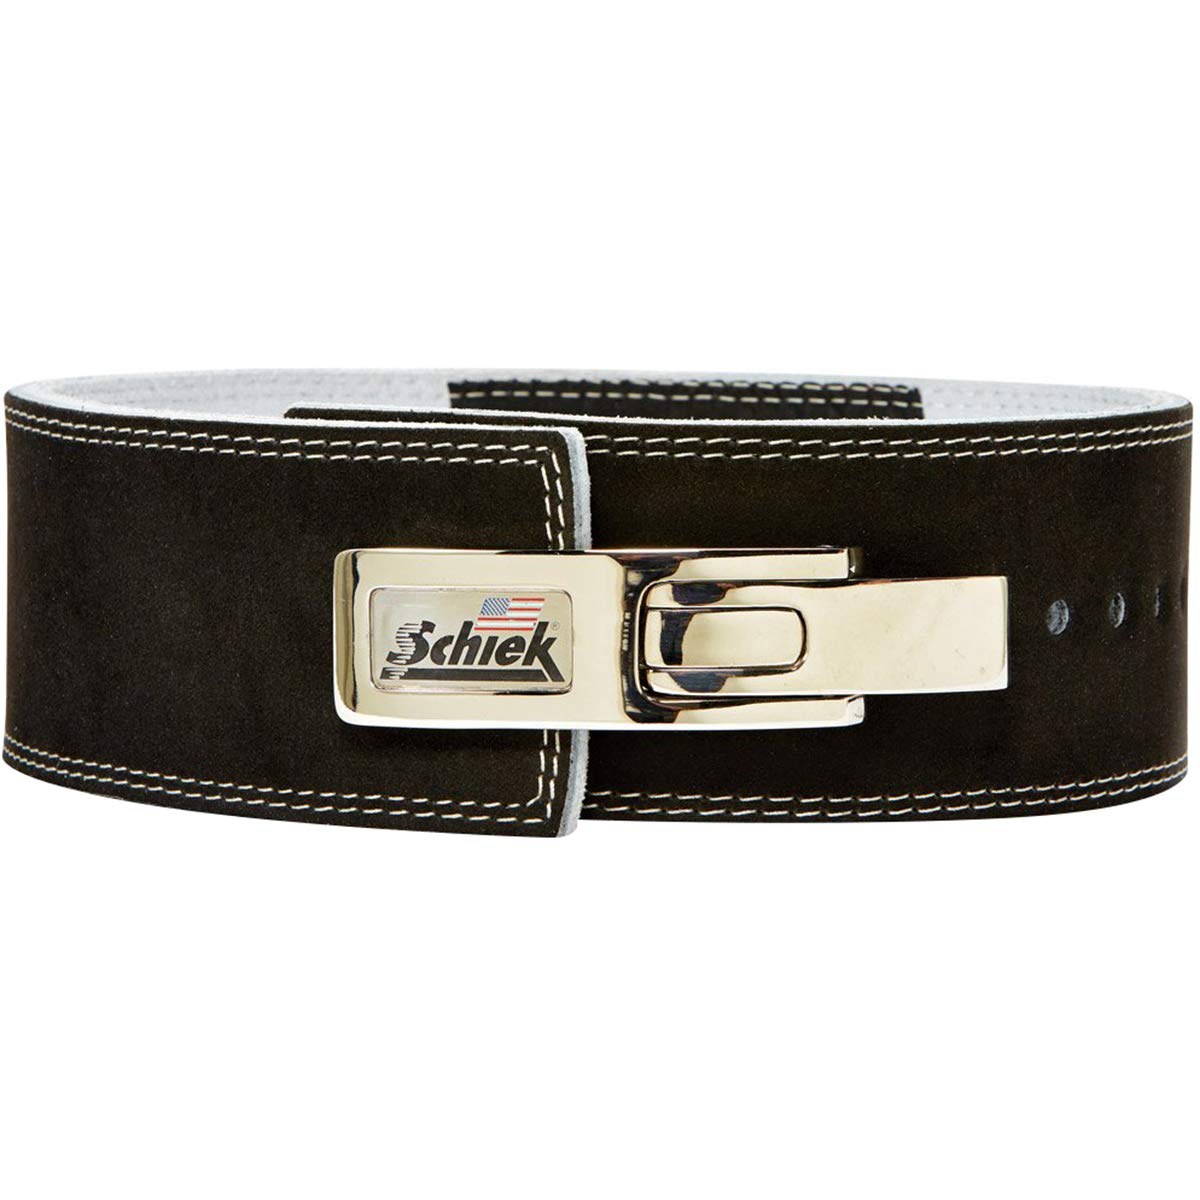 Schiek Lever Competition Power Belt in Black Size Small 27 – 32